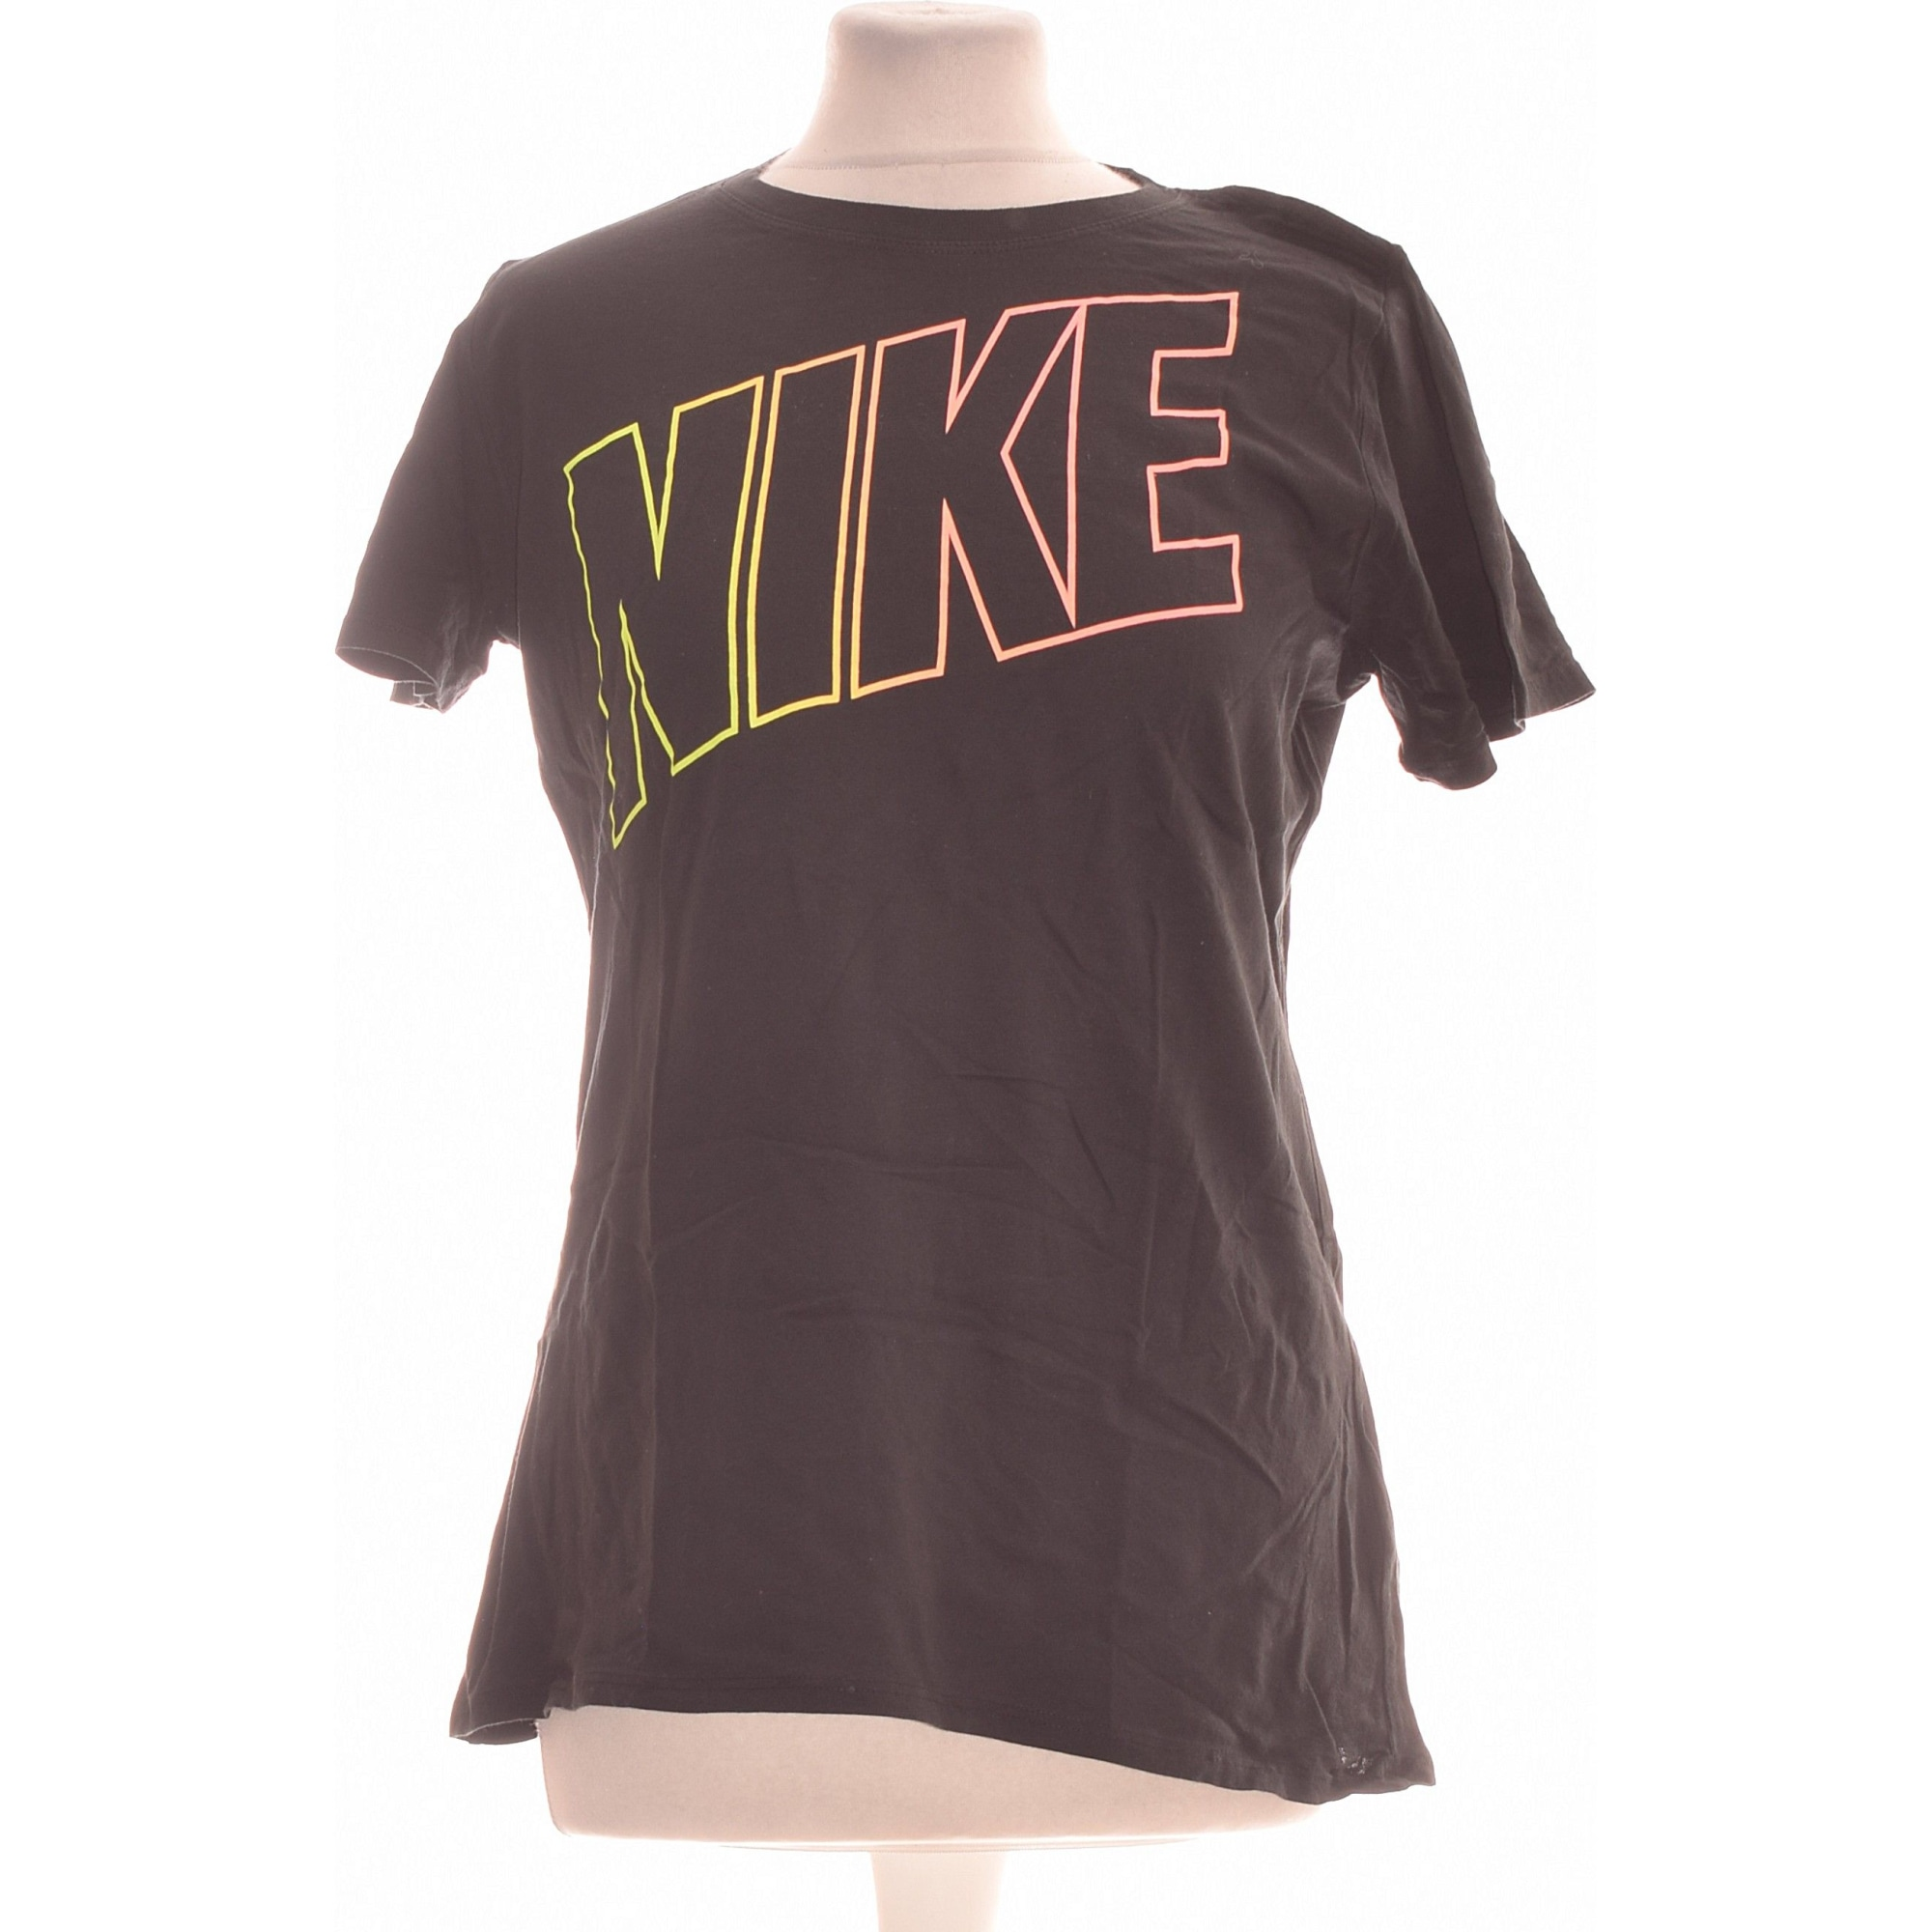 Top, tee-shirt NIKE Noir